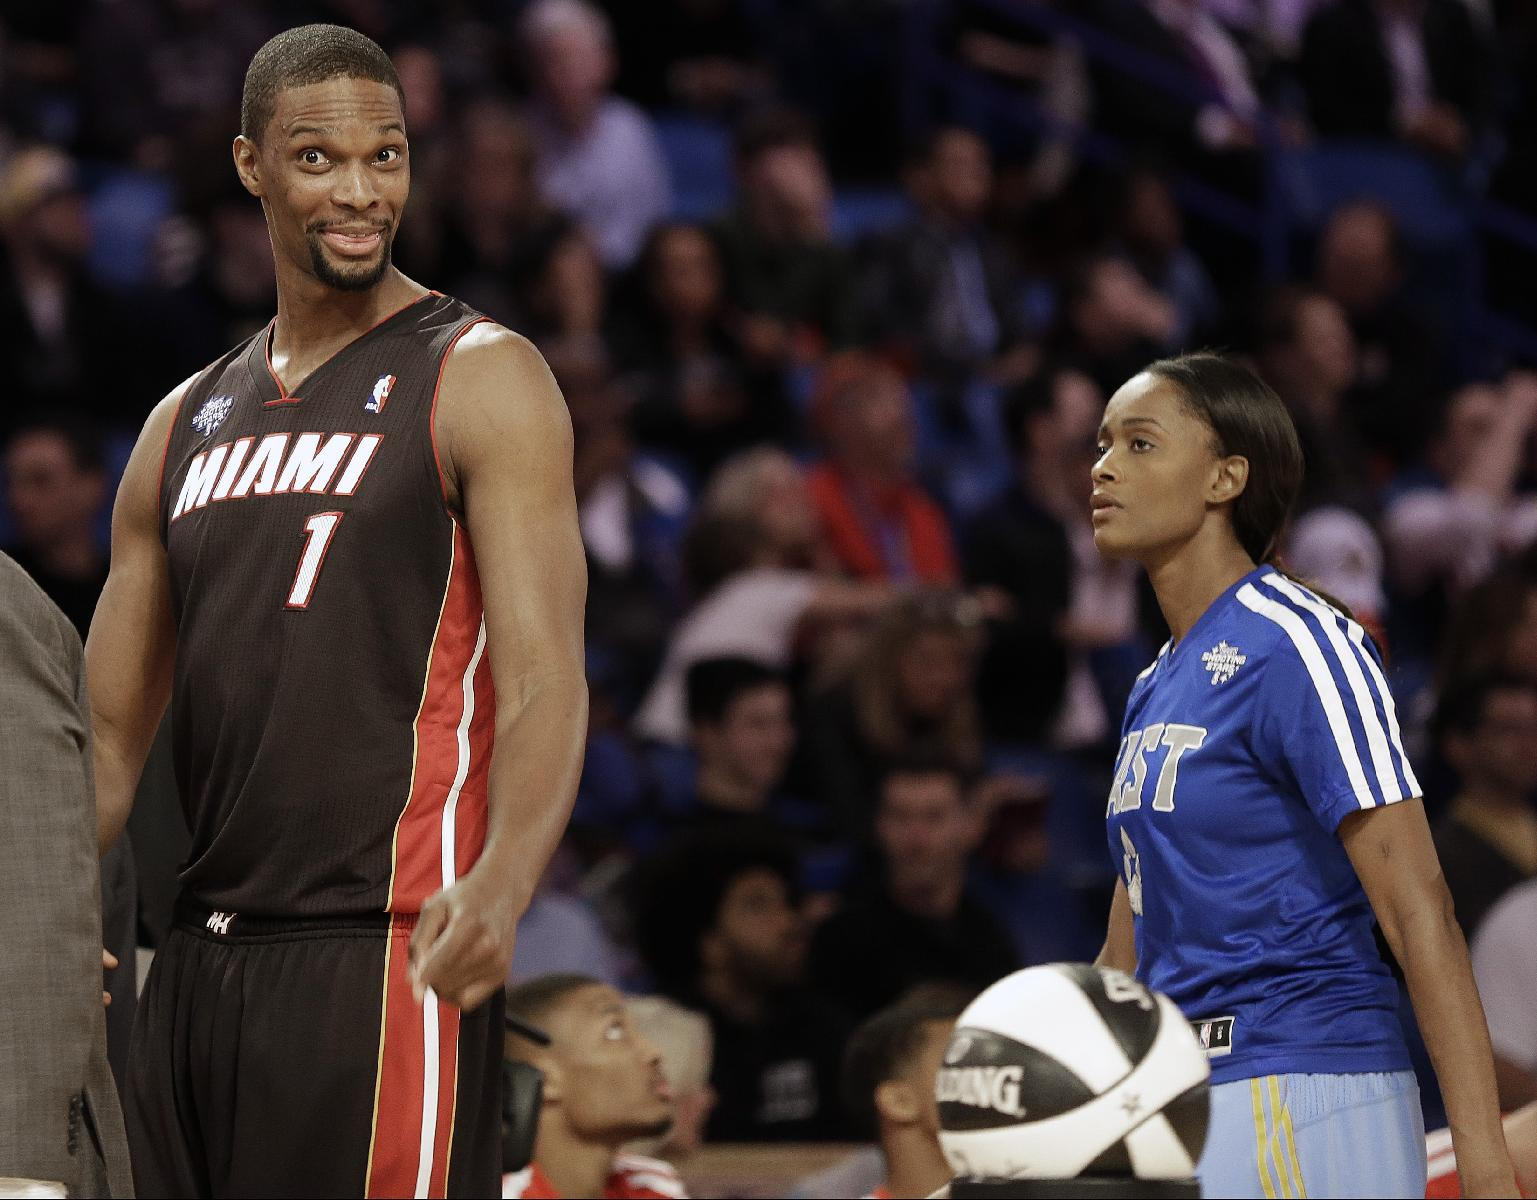 Chris Bosh, of the Miami Heat (1) and WNBA Chicago Sky player Elena Delle Donne walk the court during the skills competition at the NBA All Star basketball game, Saturday, Feb. 15, 2014, in New Orleans